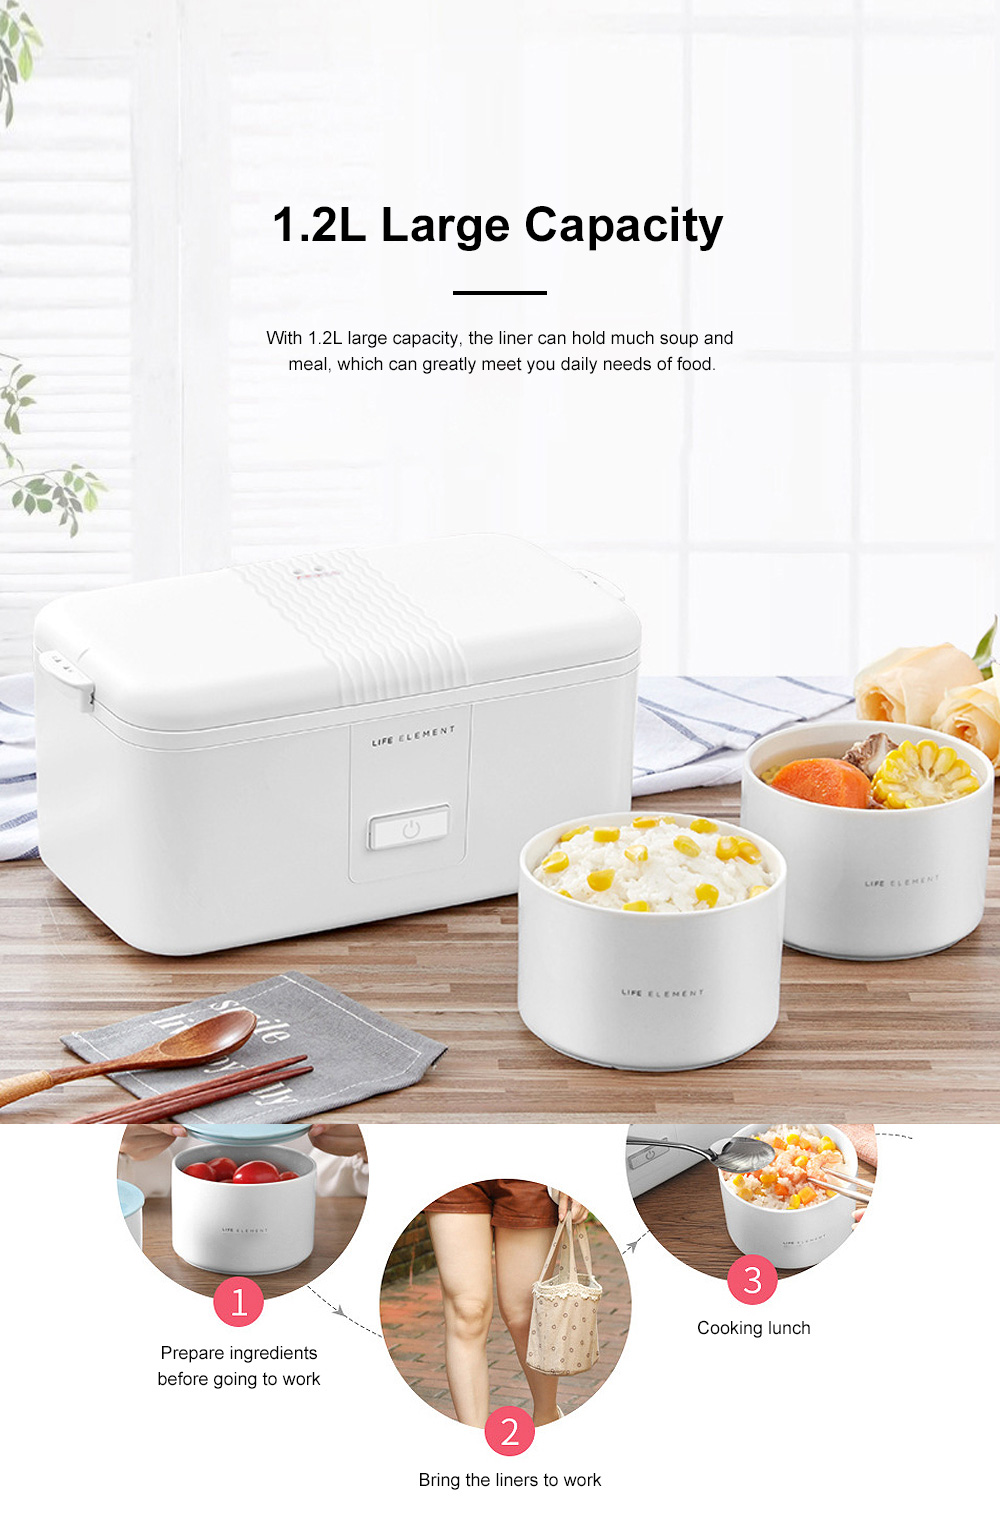 Portable Heat Preservation Electric Cooker with Double Ceramics Bowls, Delicate Food-grade PP Material Heating Lunch Box 2